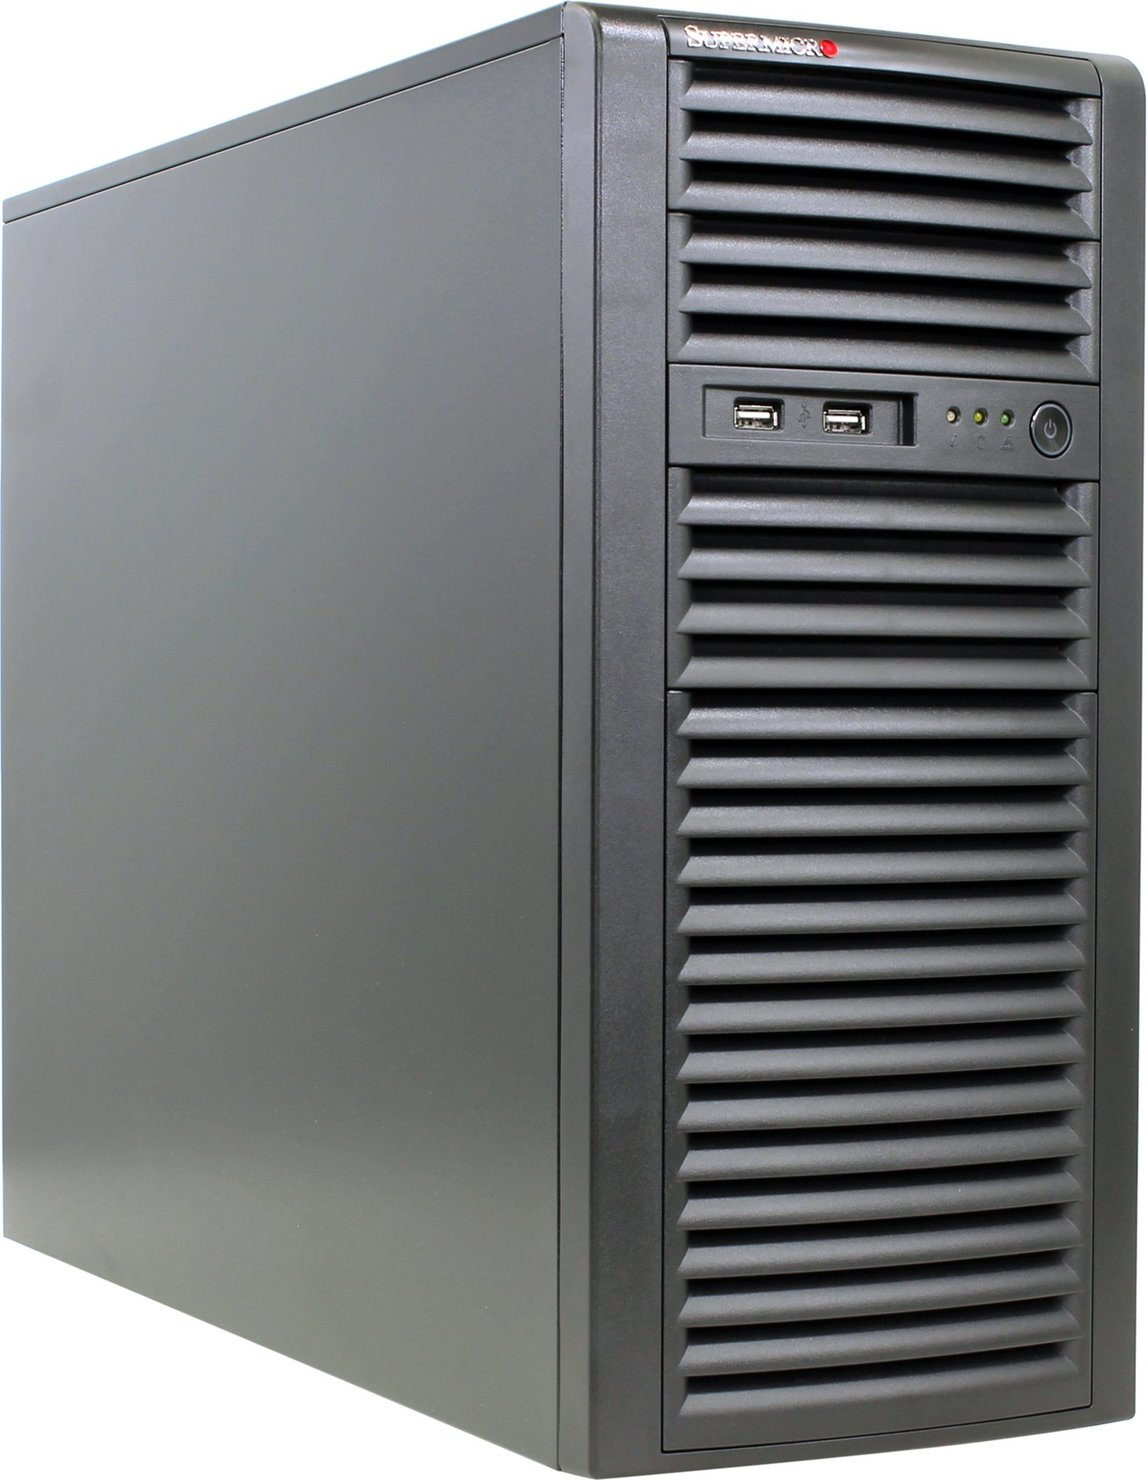 SERVER Tower 0120 0671641 1xE3-1220v6/1x8gb/2x1tb/2x500w/Windows Server 2019 Standard server 400